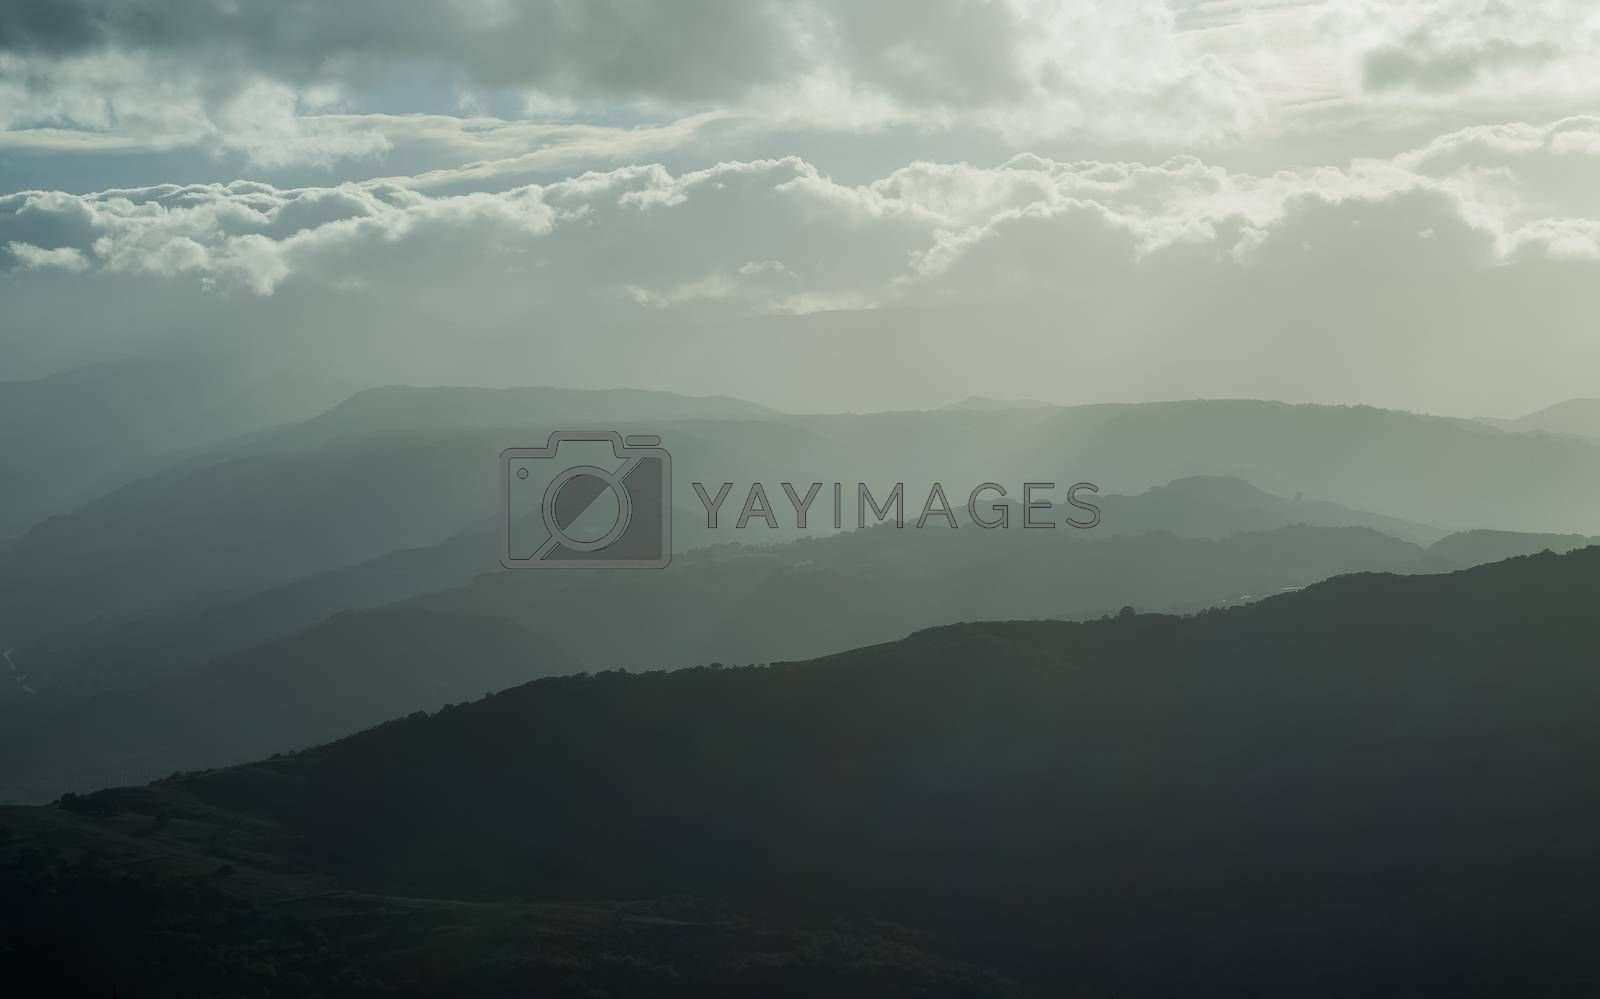 mountains silhouette with fog, natural daily light tint